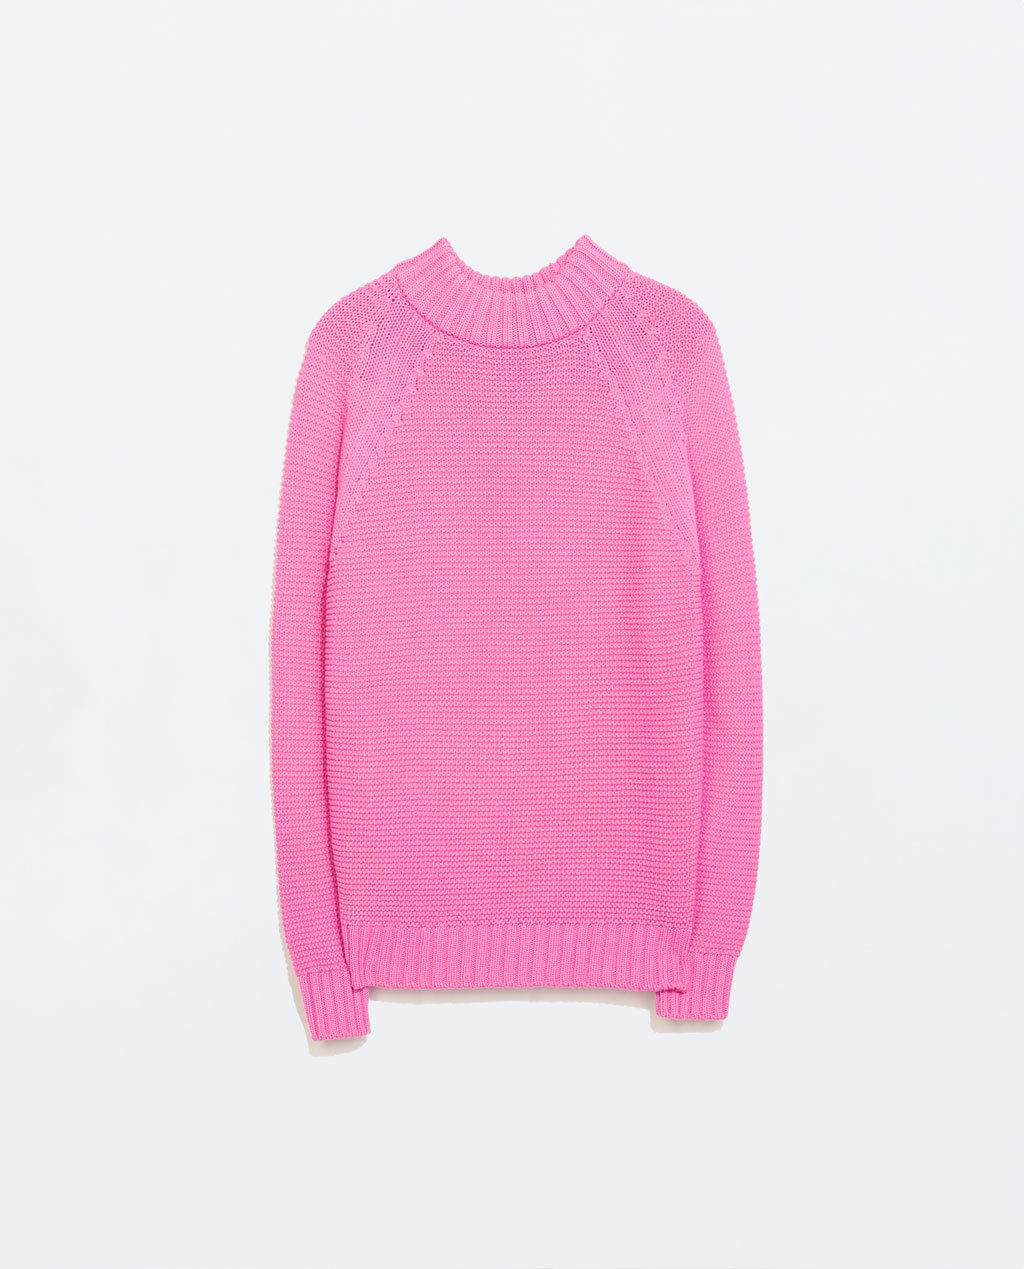 Knit Sweater - pattern: plain; neckline: high neck; length: below the bottom; style: standard; predominant colour: pink; occasions: casual, creative work; fibres: cotton - mix; fit: standard fit; sleeve length: long sleeve; sleeve style: standard; texture group: knits/crochet; pattern type: fabric; trends: statement knits; season: a/w 2014